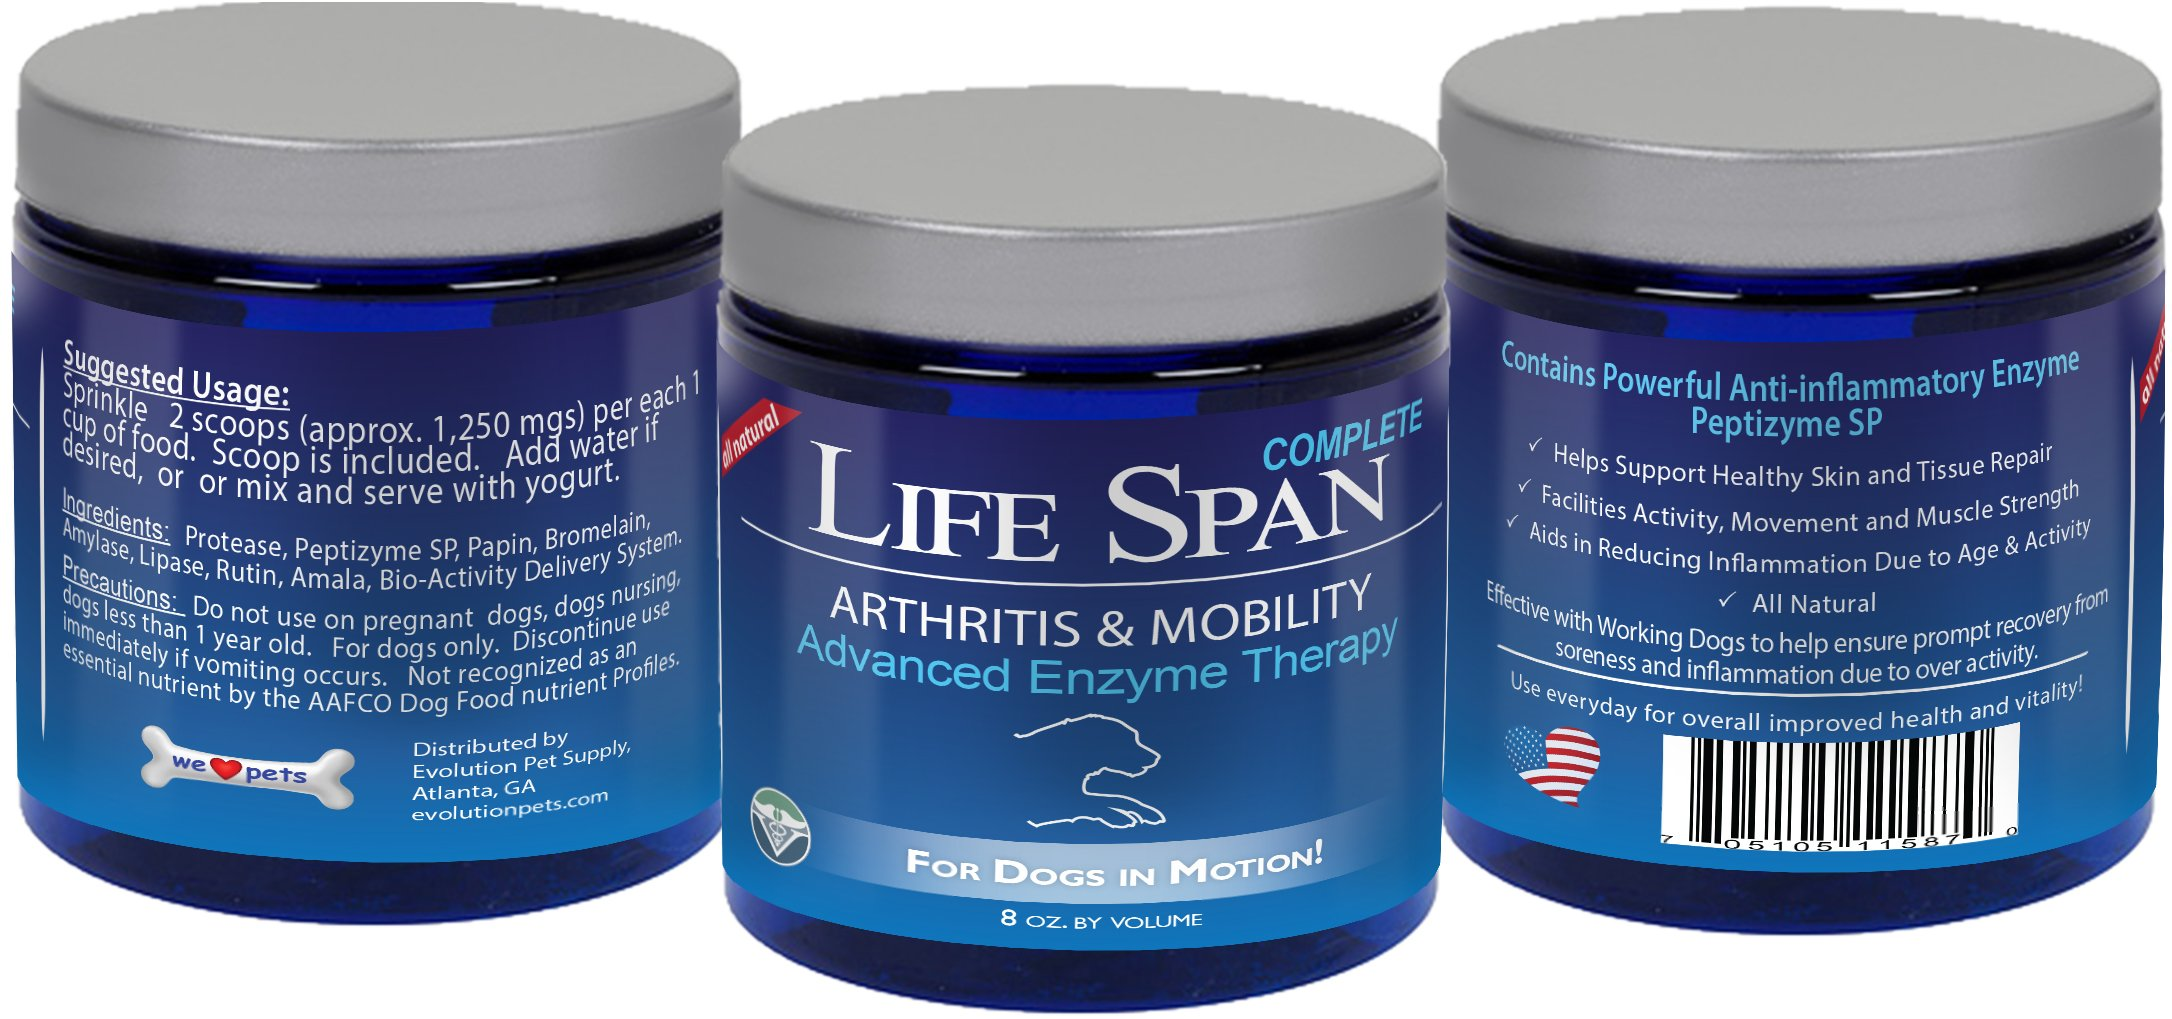 LifeSpan Systemic Enzymes for Dog Arthritis, Mobility, and Pain Relief